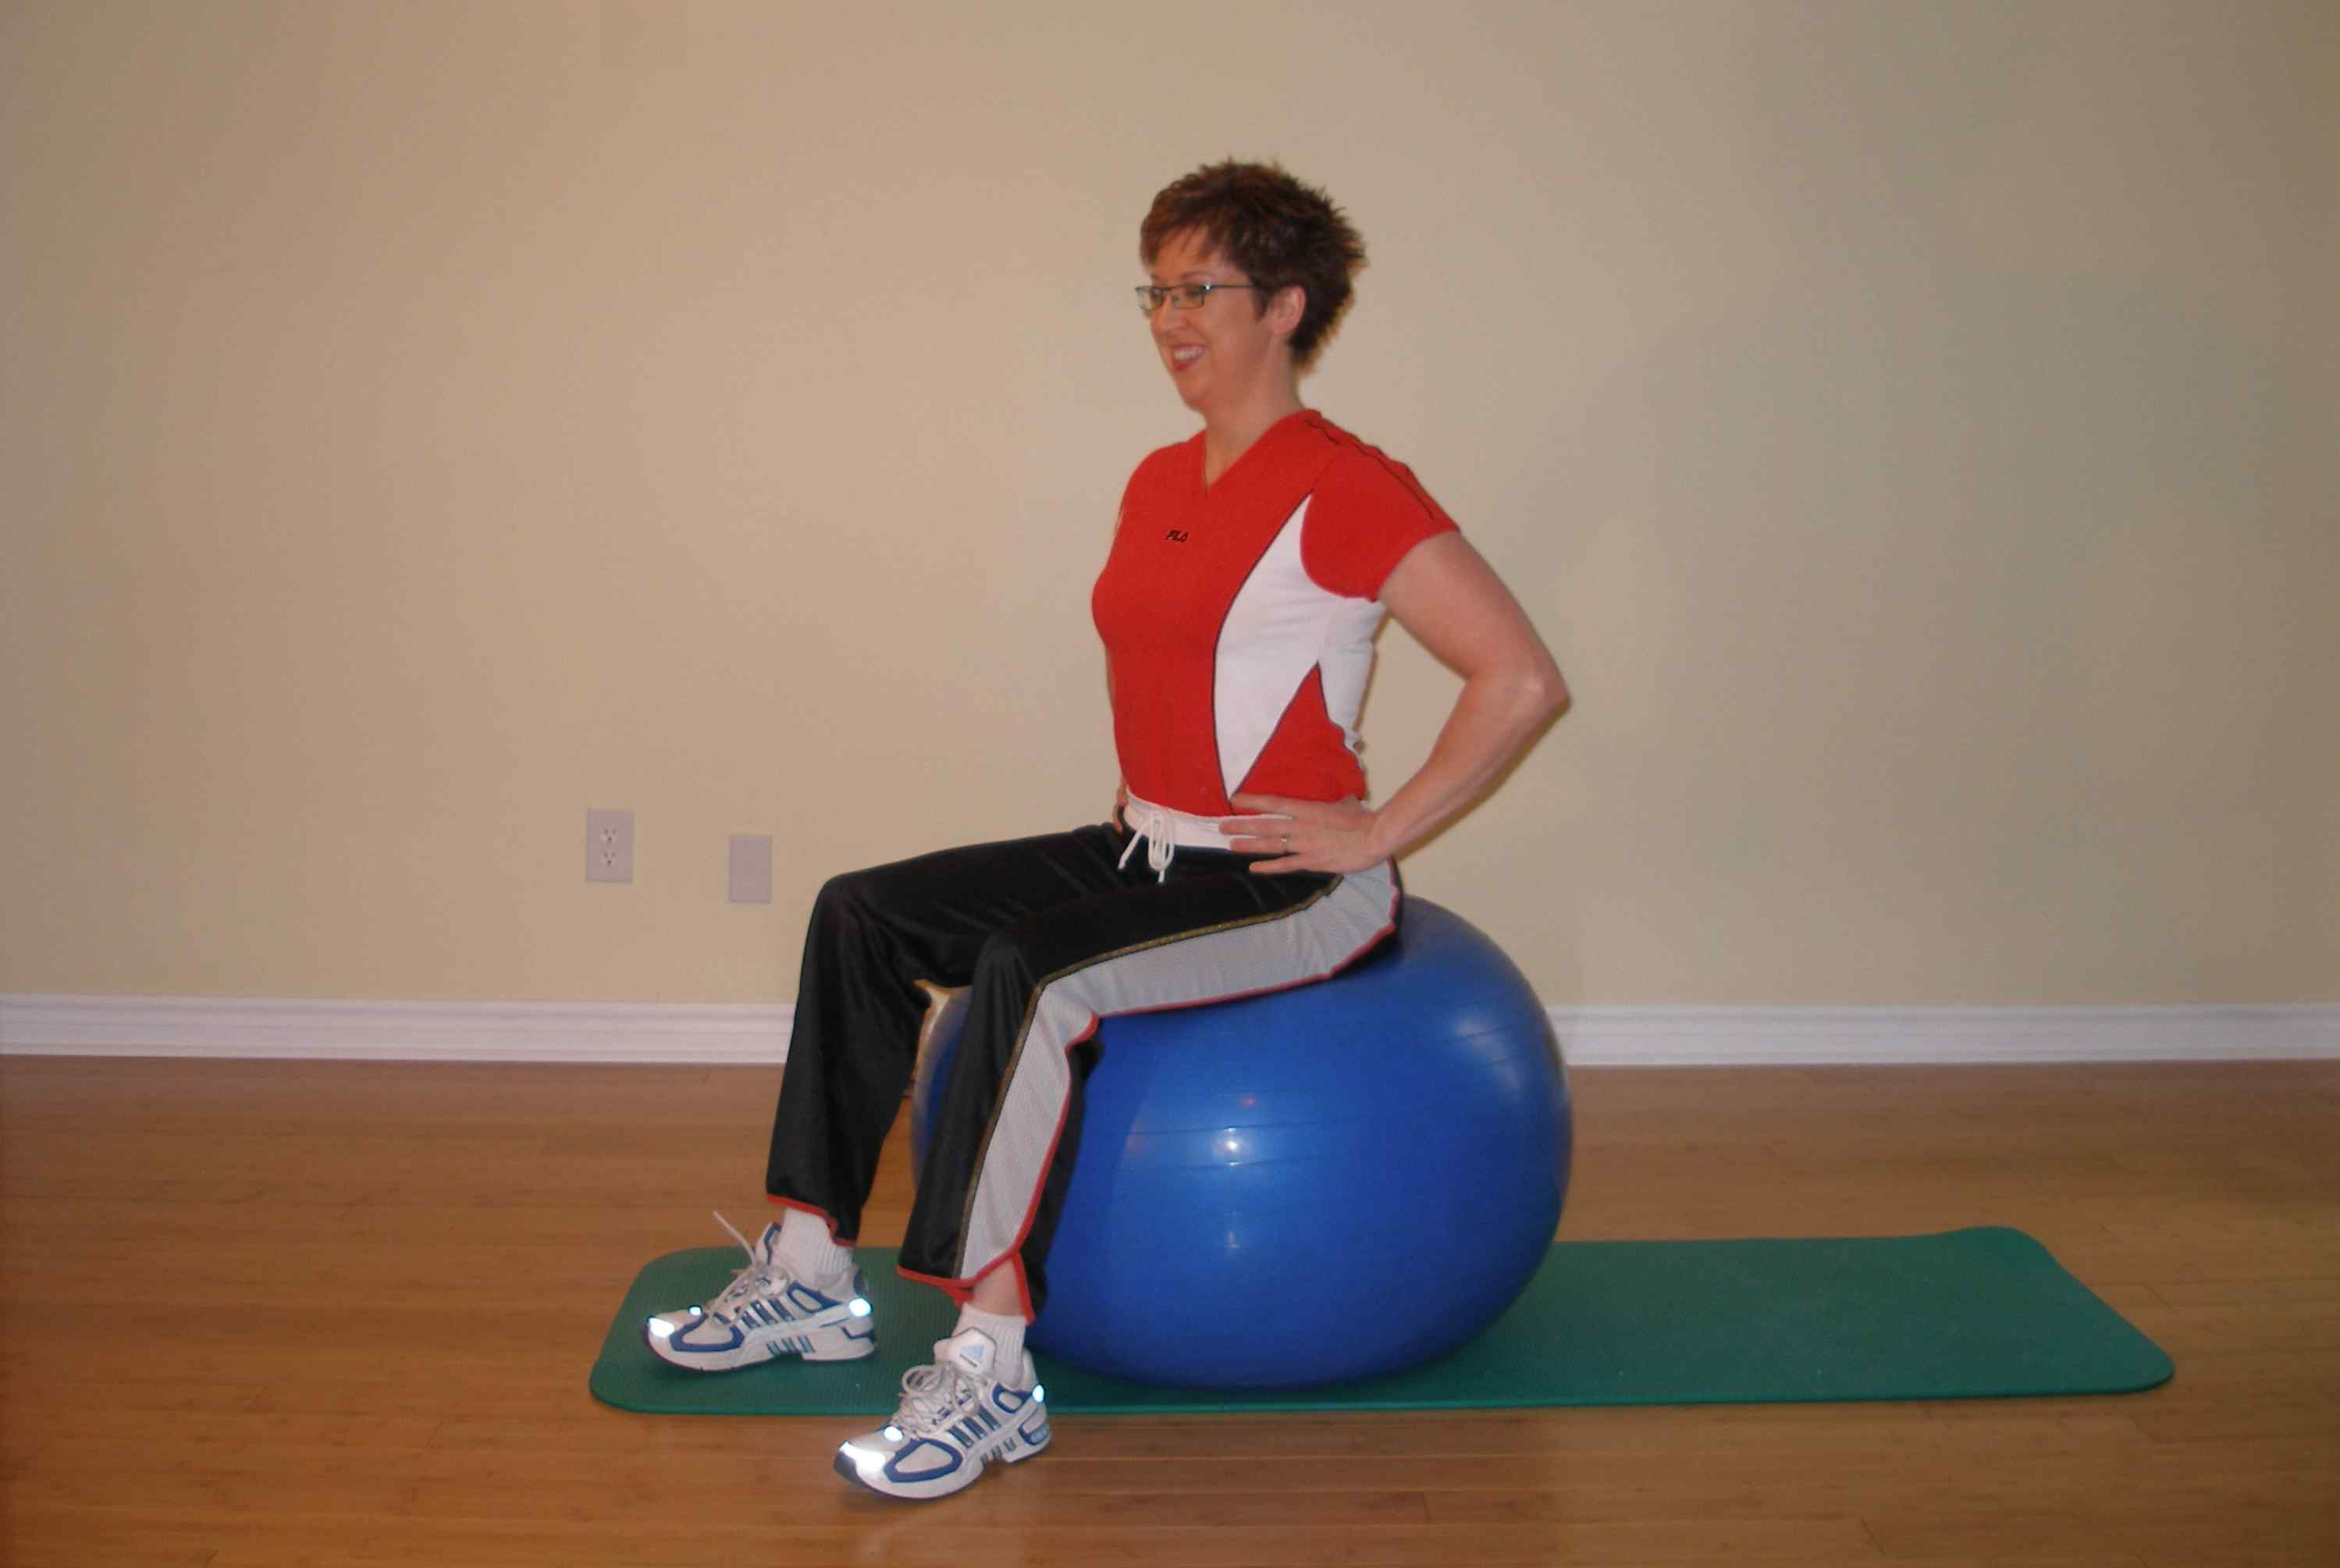 Seated leg raise on the exercise ball start